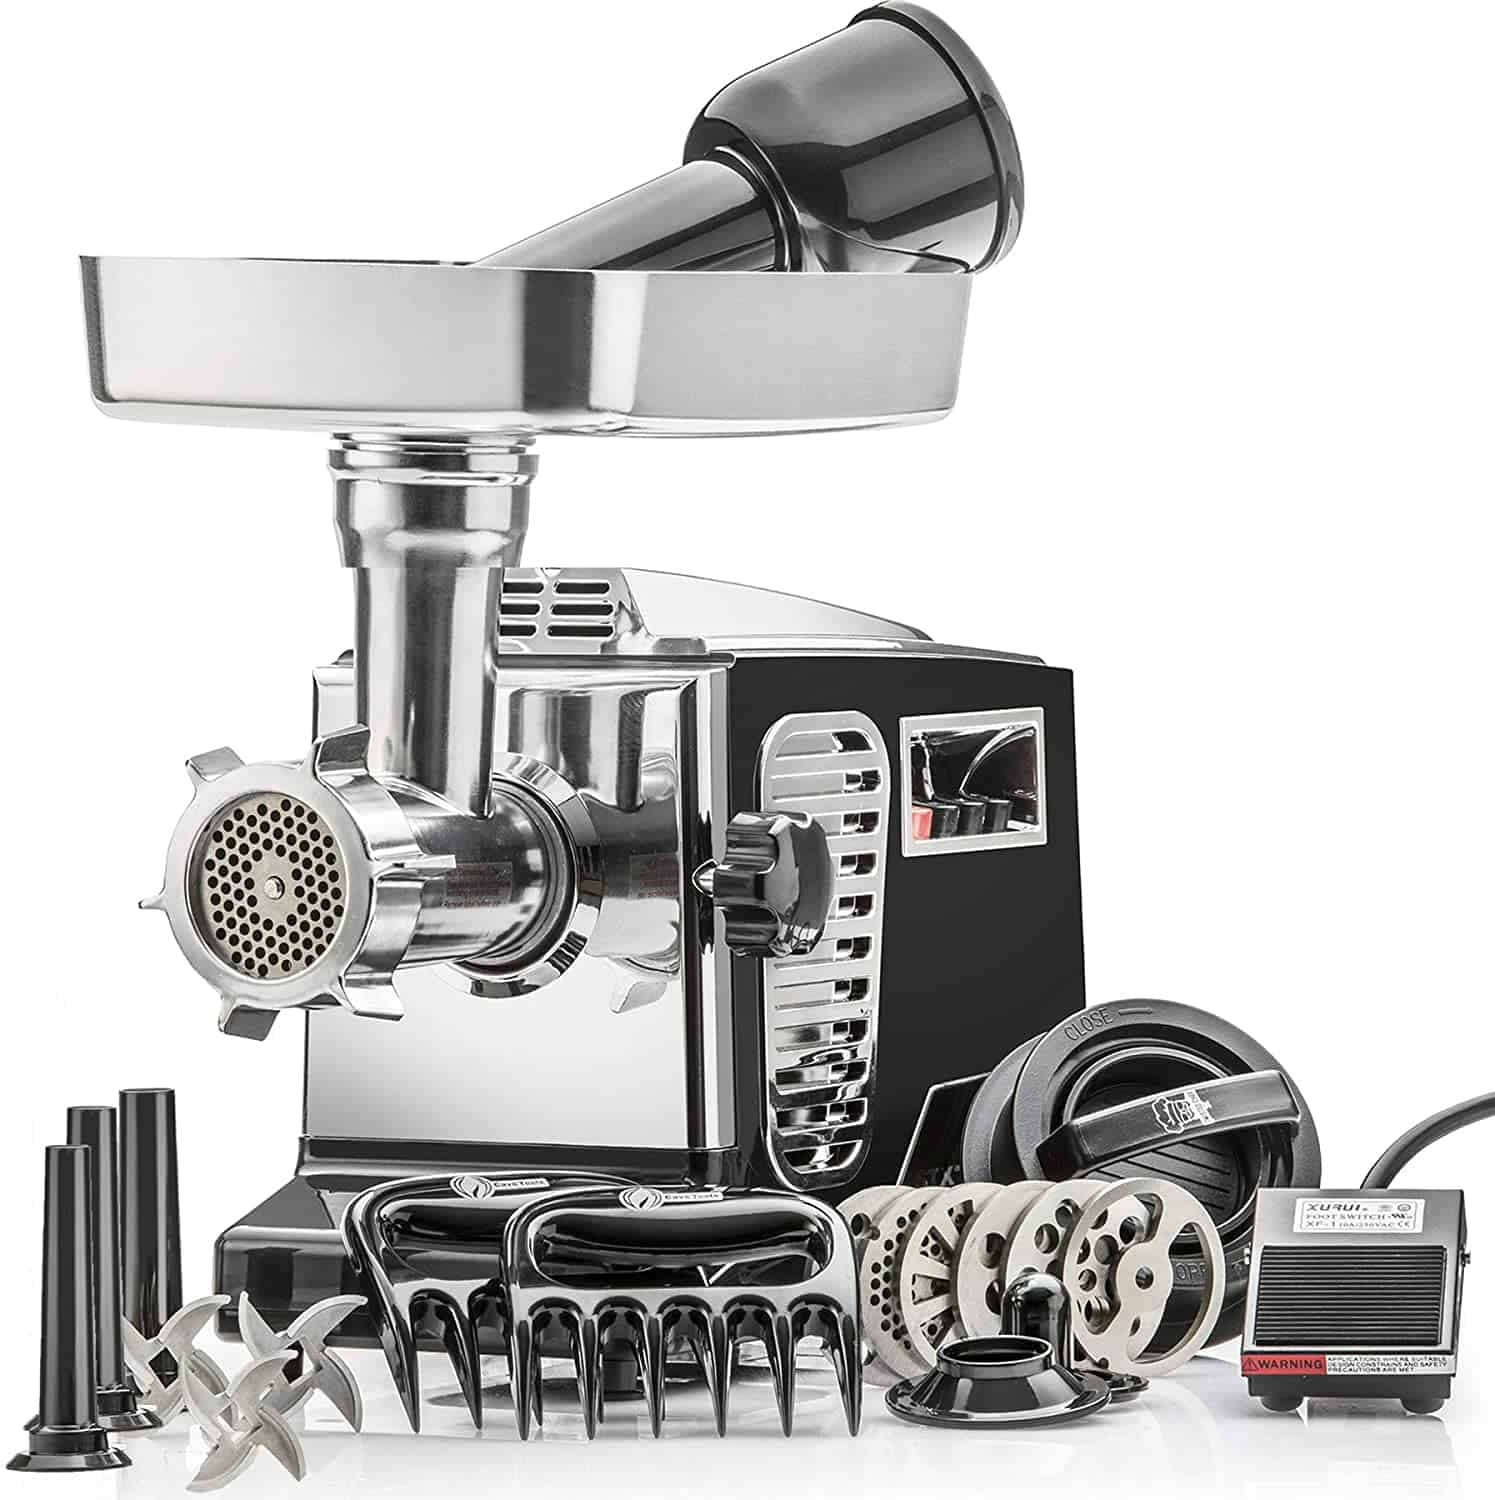 STX Turboforce II Electric Meat Grinder